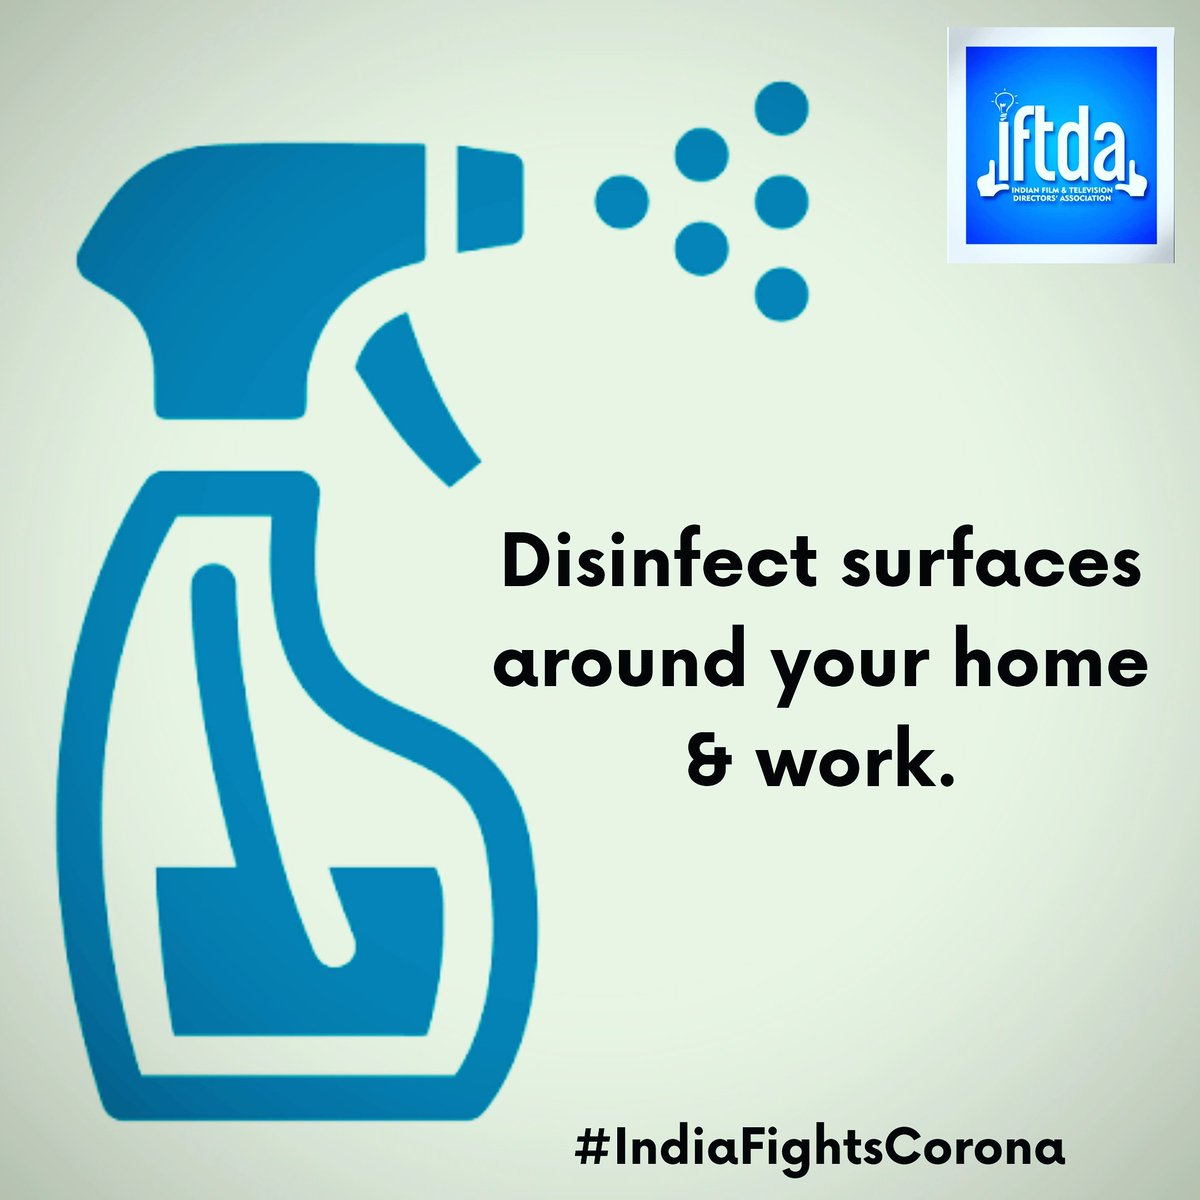 Disinfect surfaces around your home & work. #COVID2019 #IndiaFightsCorona #covidindia